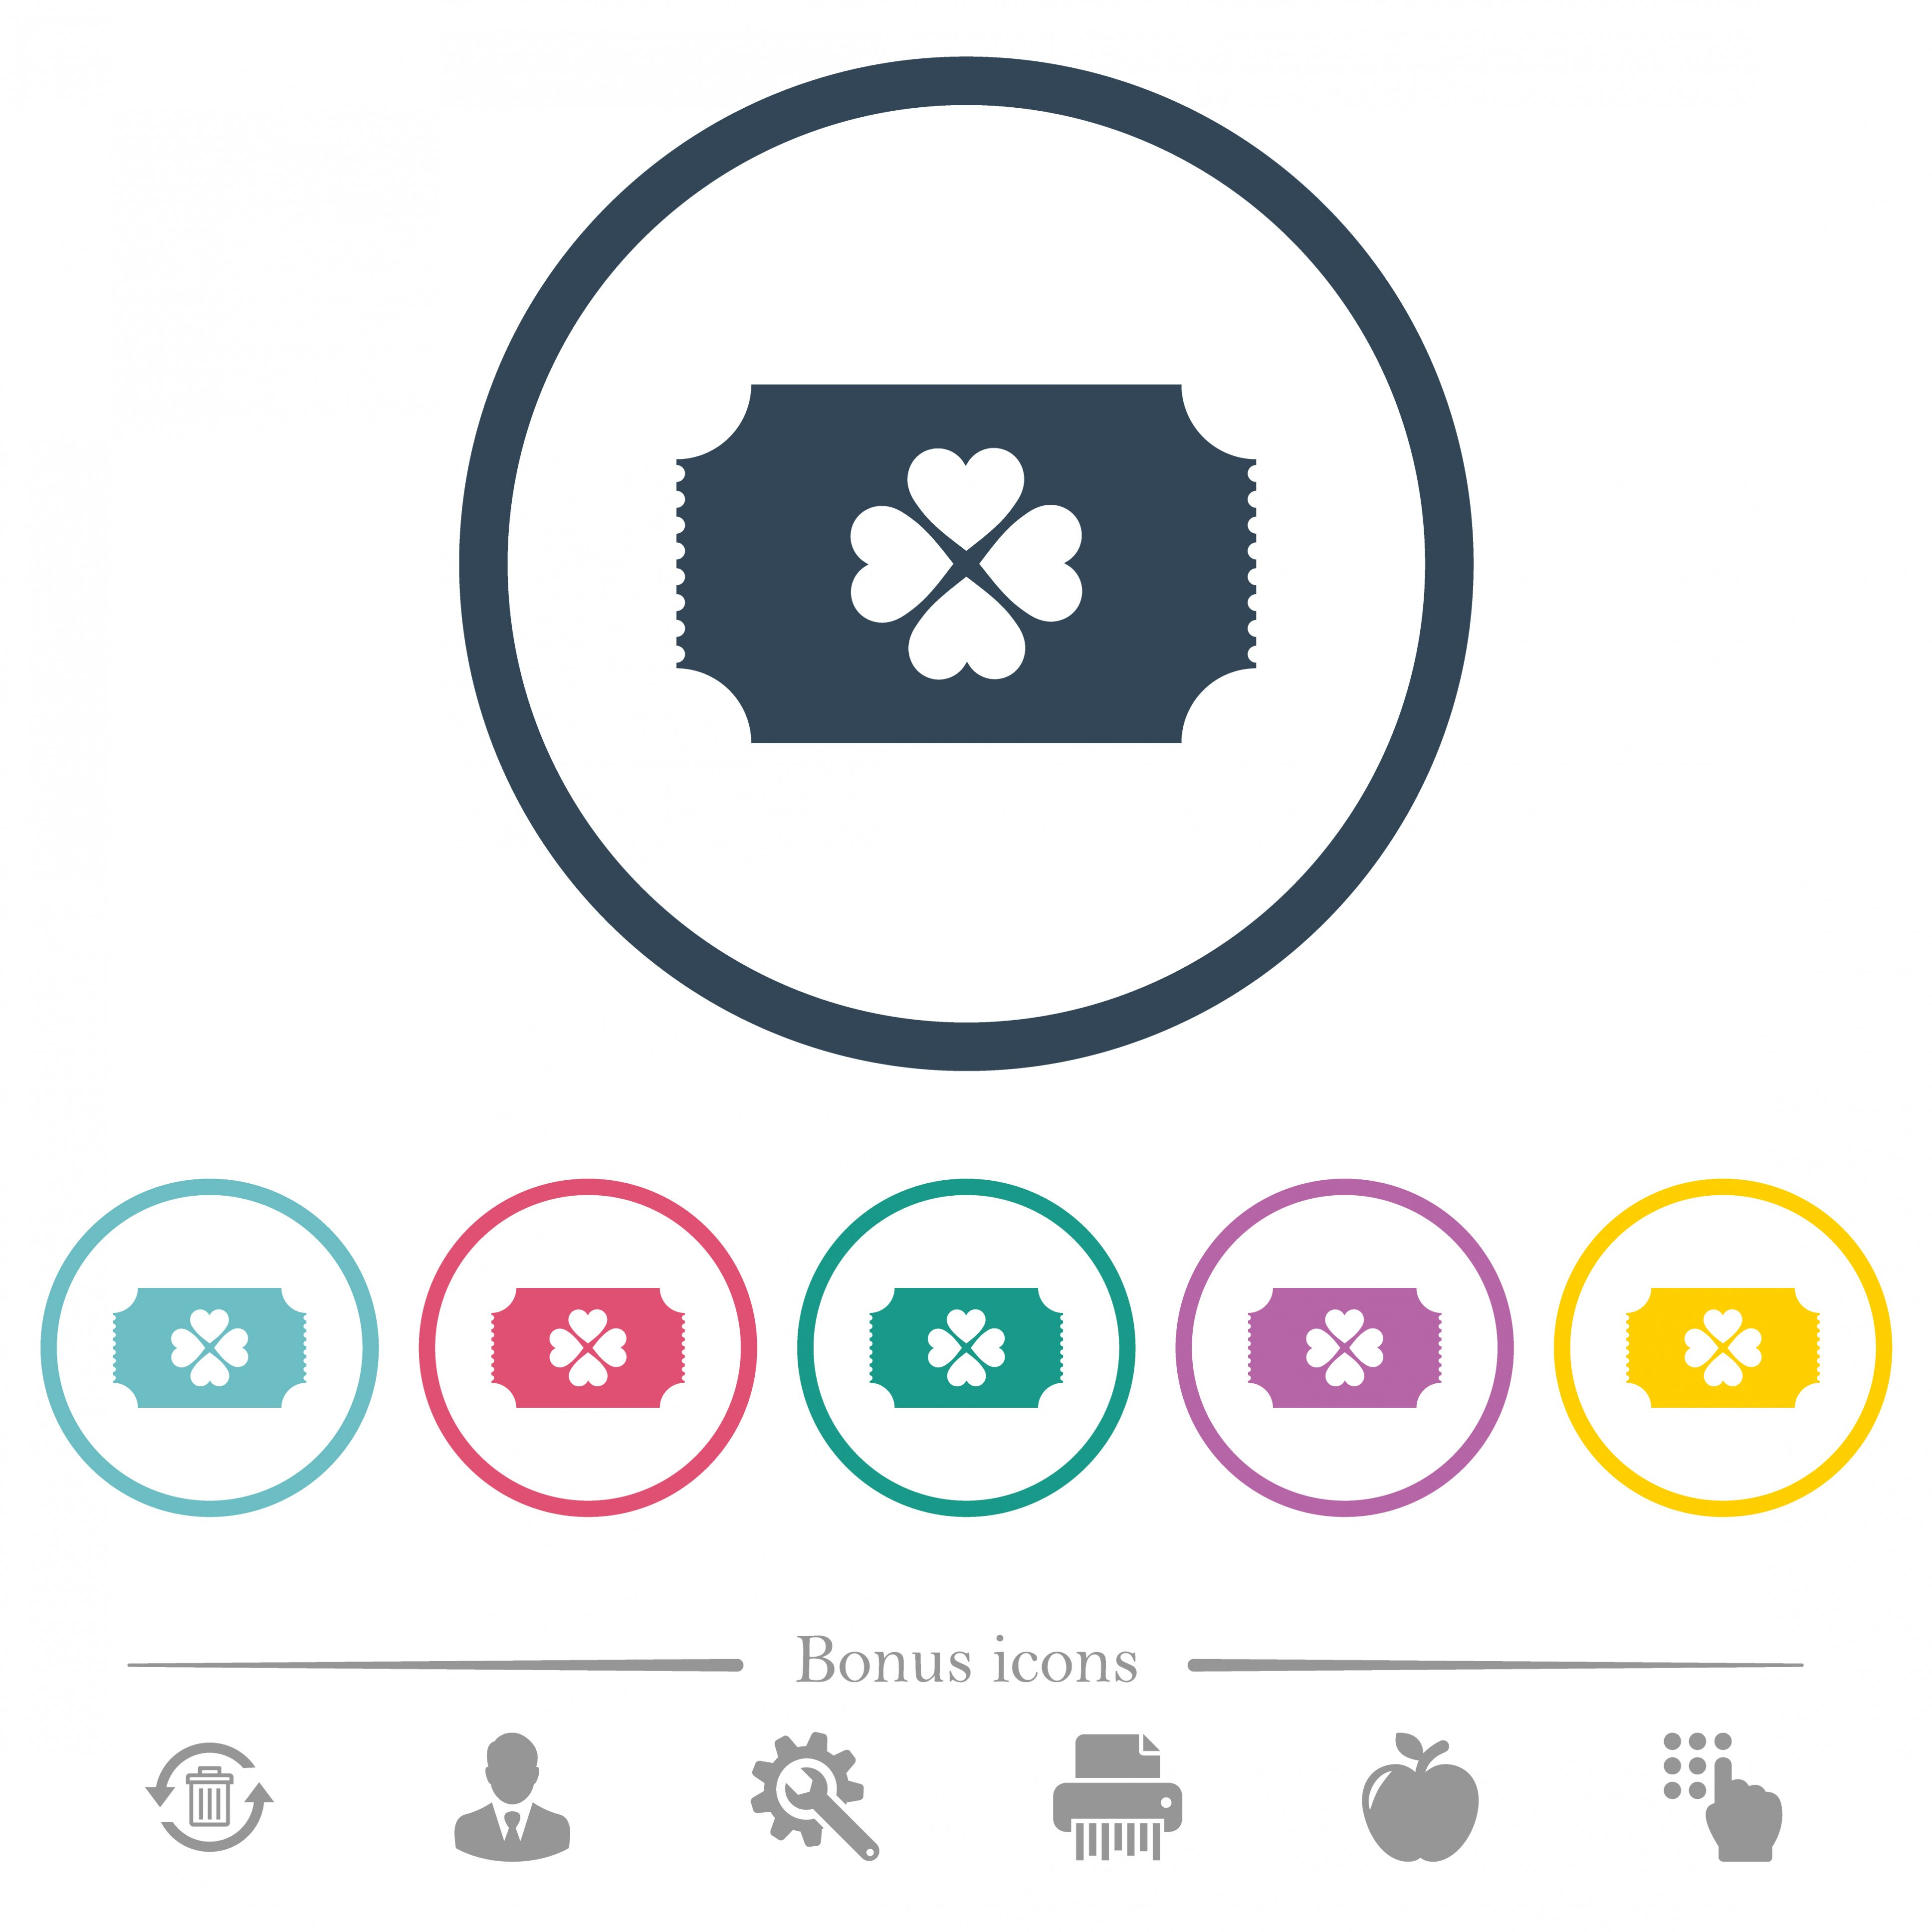 Lottery ticket flat color icons in round outlines. 6 bonus icons included. - Free image